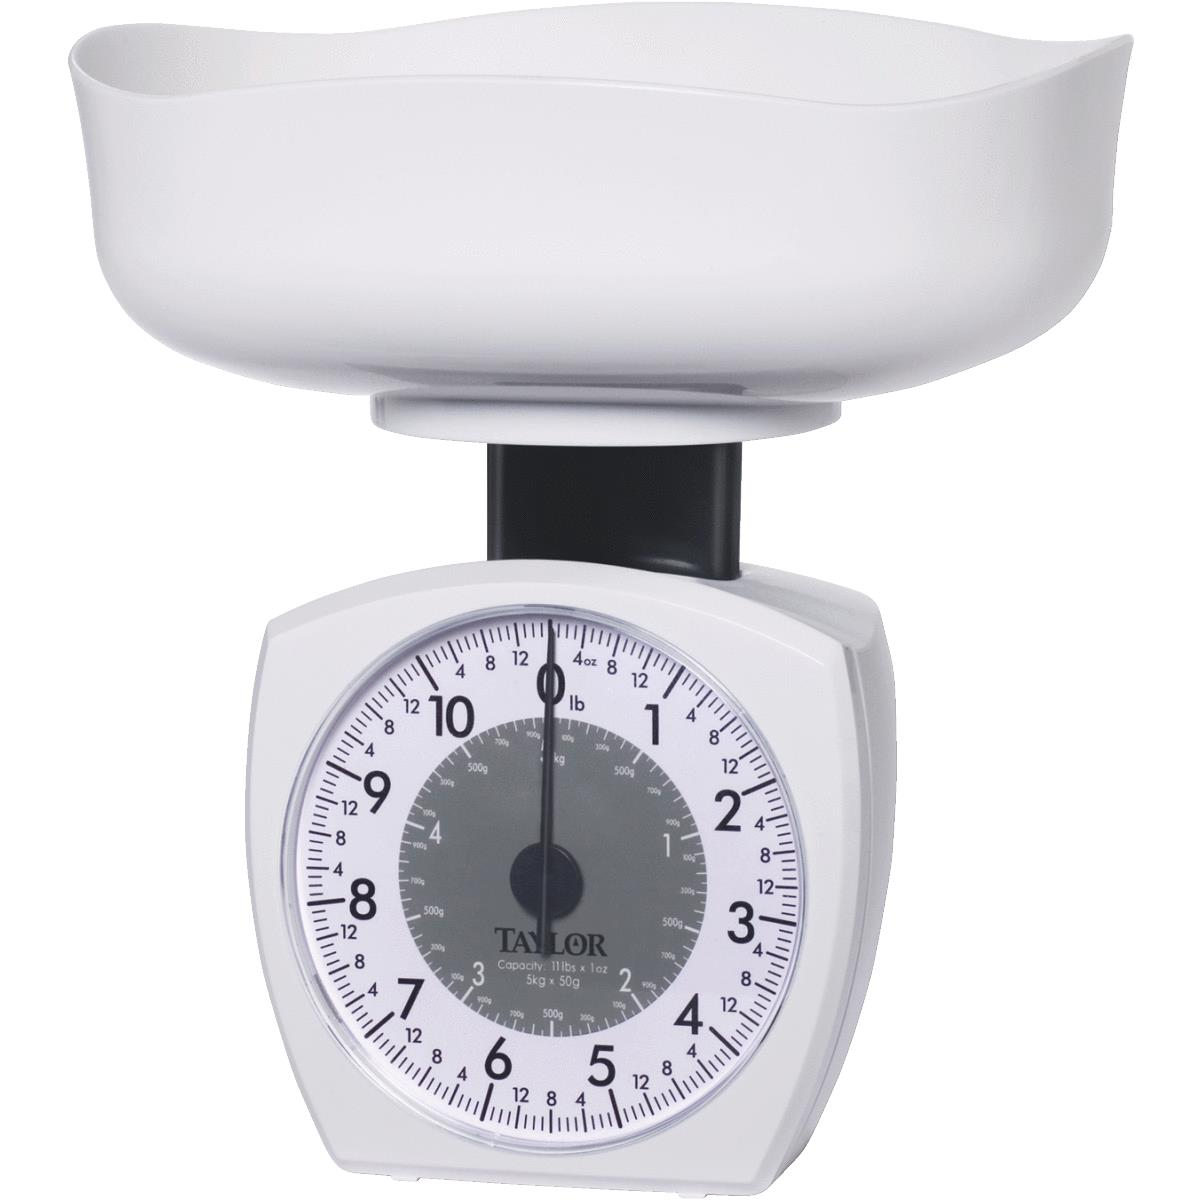 Taylor Large Capacity Kitchen Food Scale